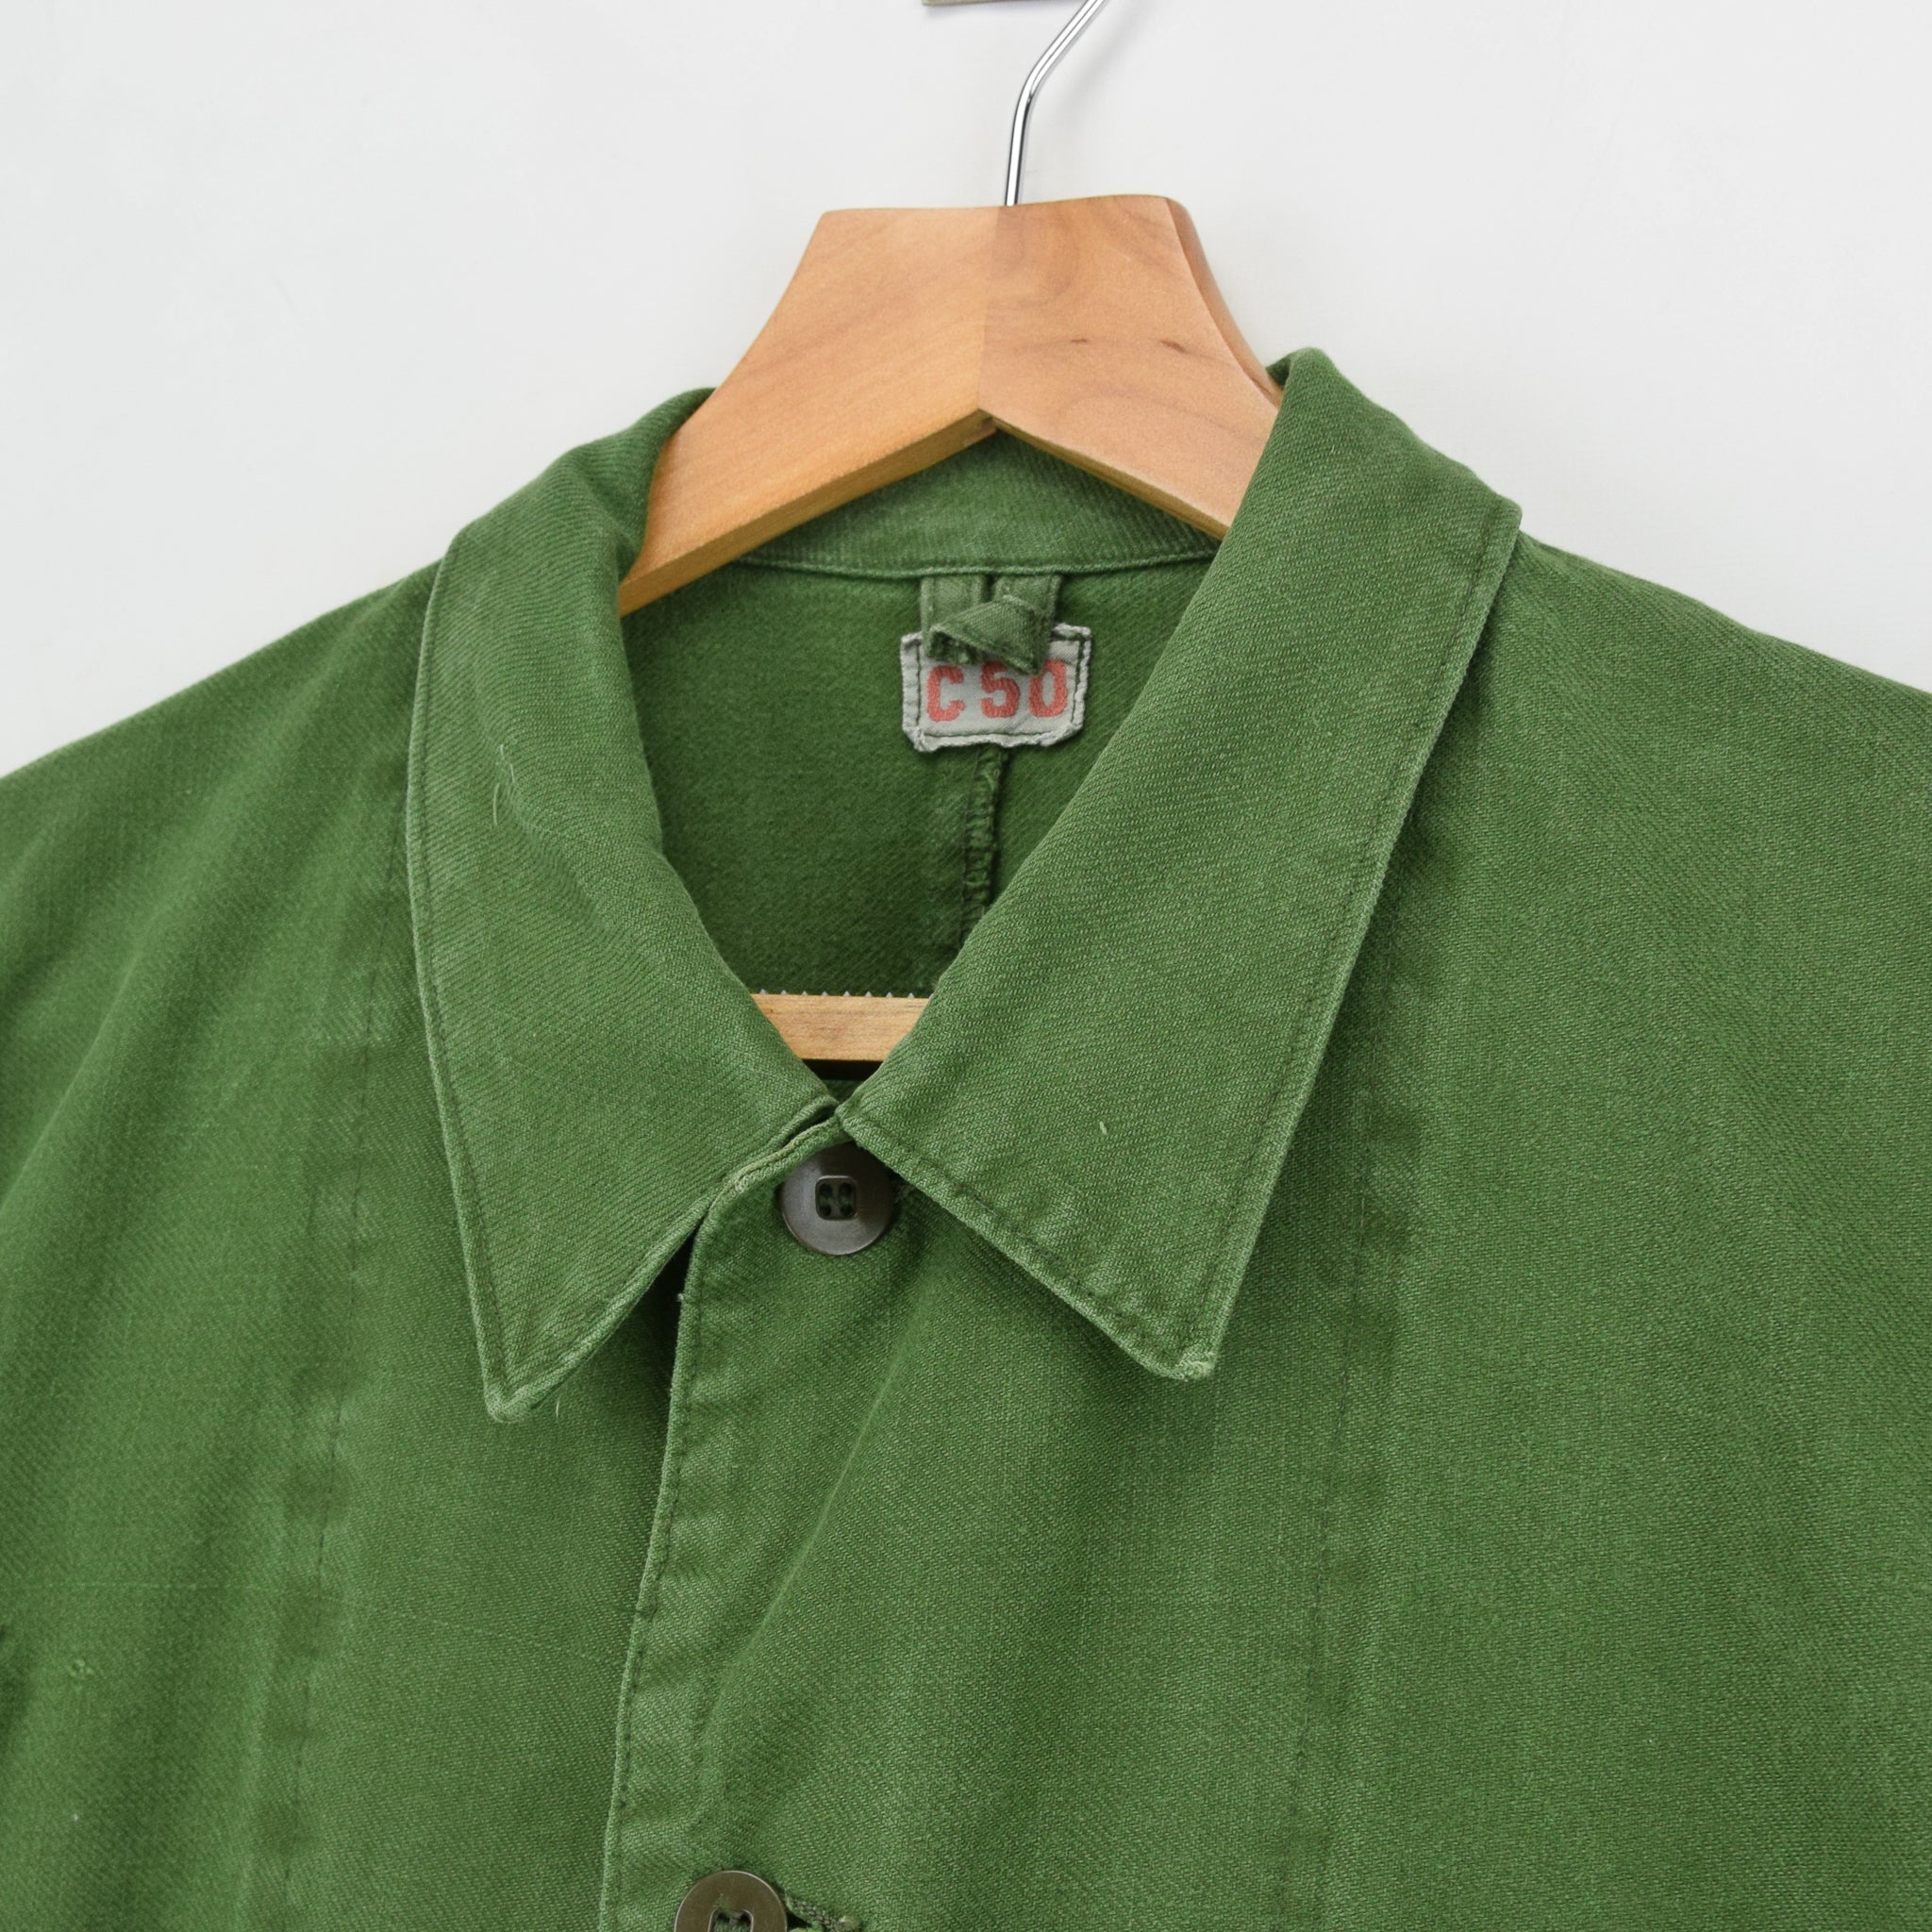 Vintage Swedish Worker Style Green Distressed Military Cotton Field Jacket M / L collar